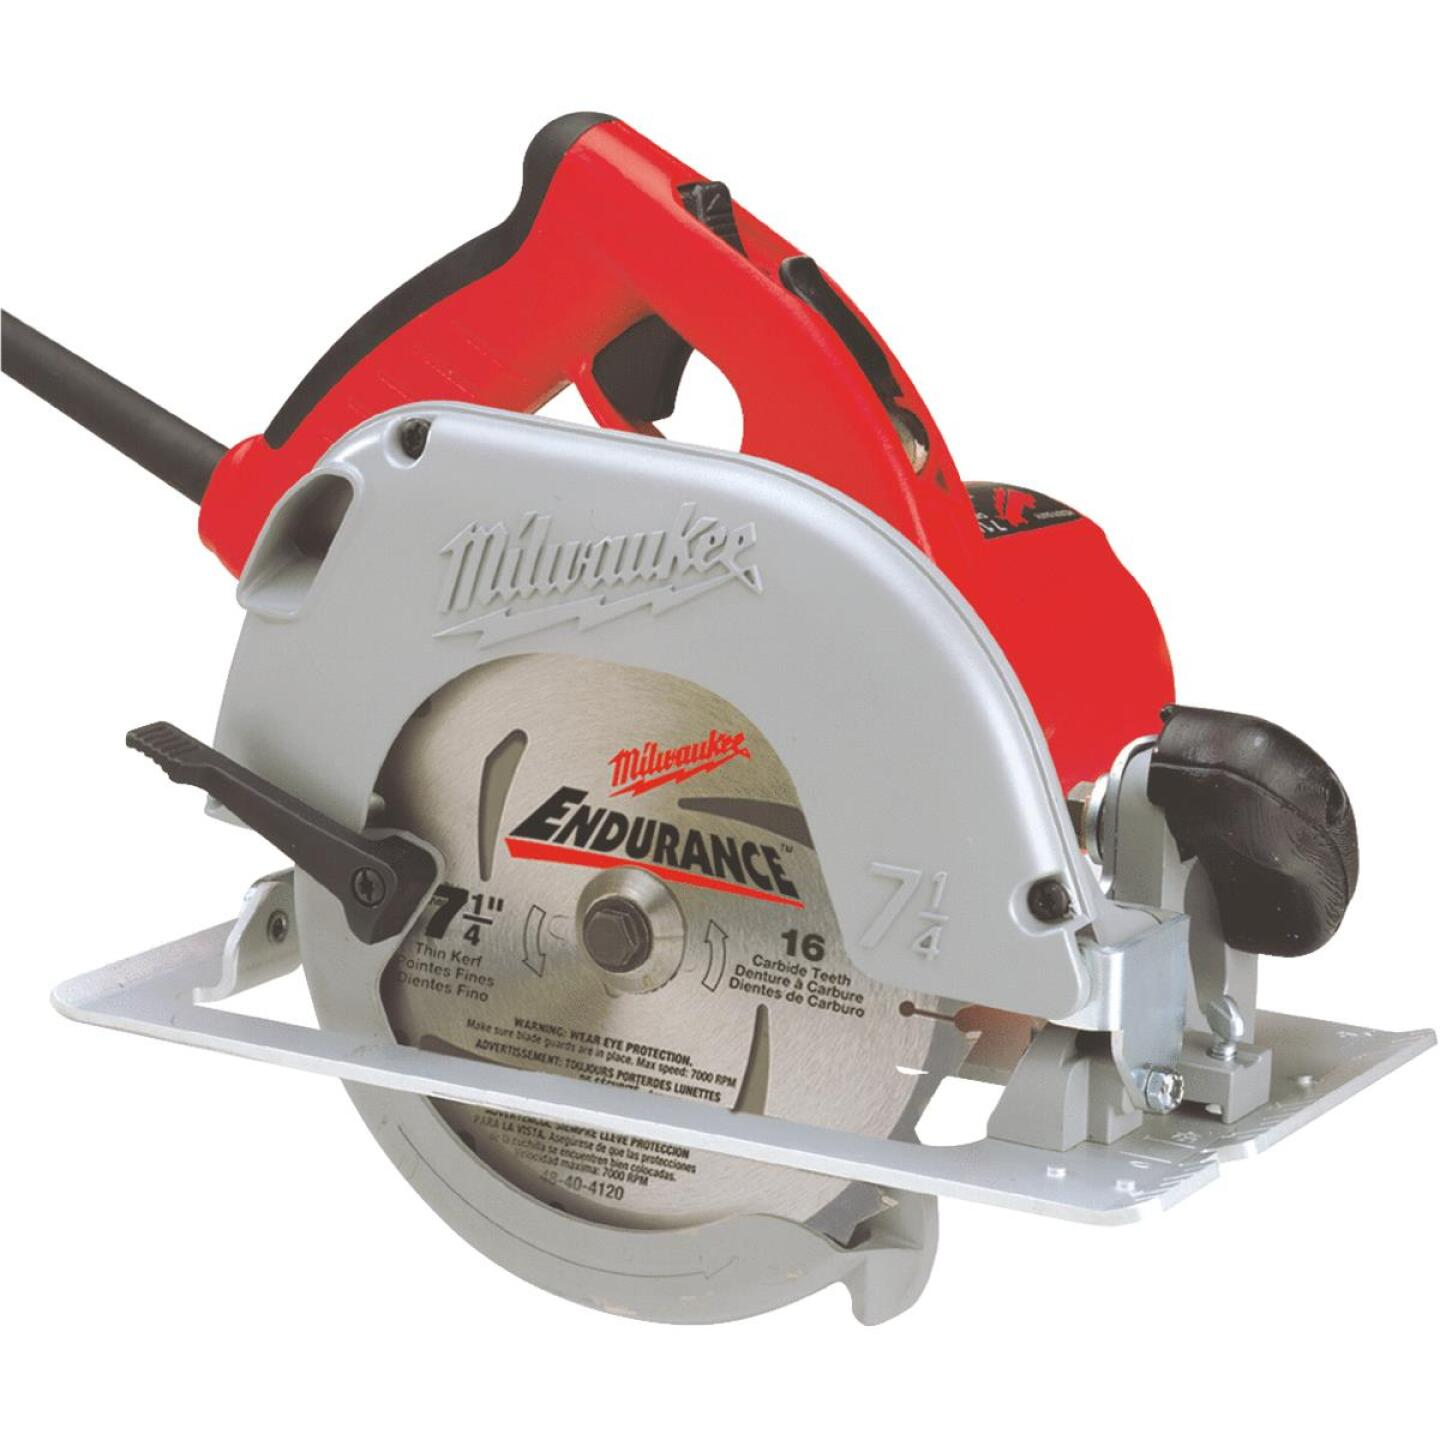 Milwaukee TILT-LOK 7-1/4 In. 15-Amp Circular Saw Image 1